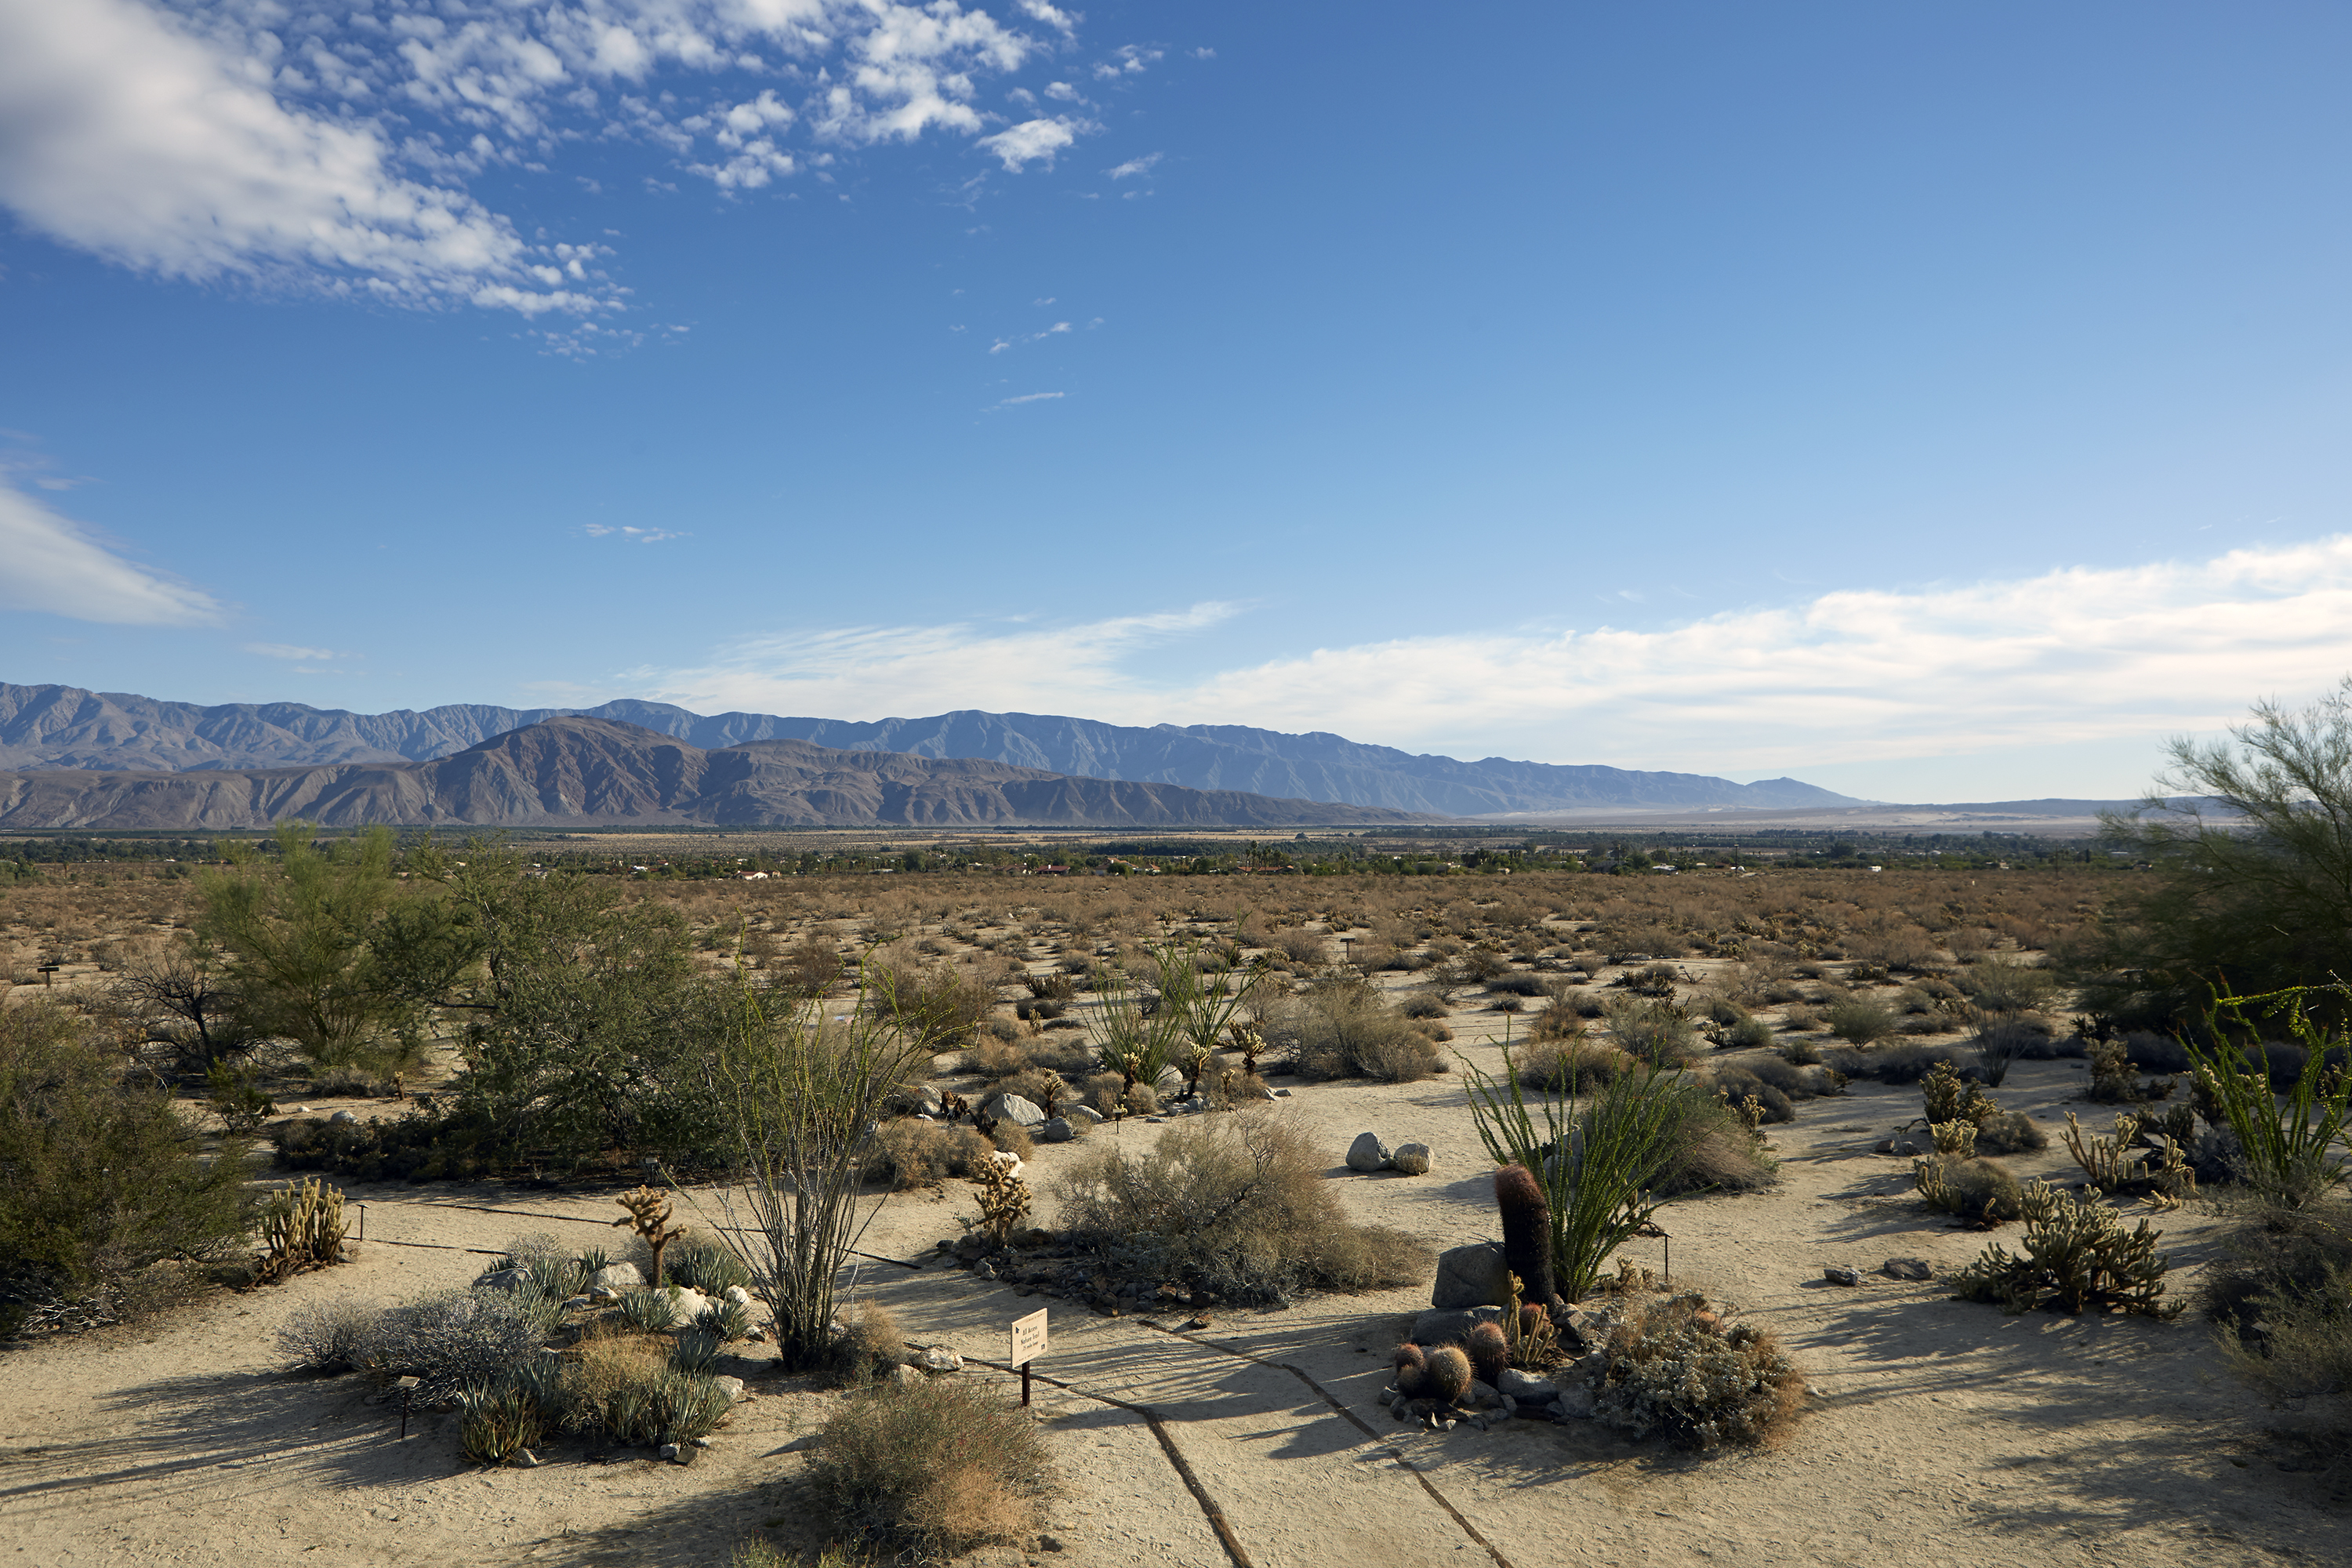 View of the desert landscape in Borrego Springs.